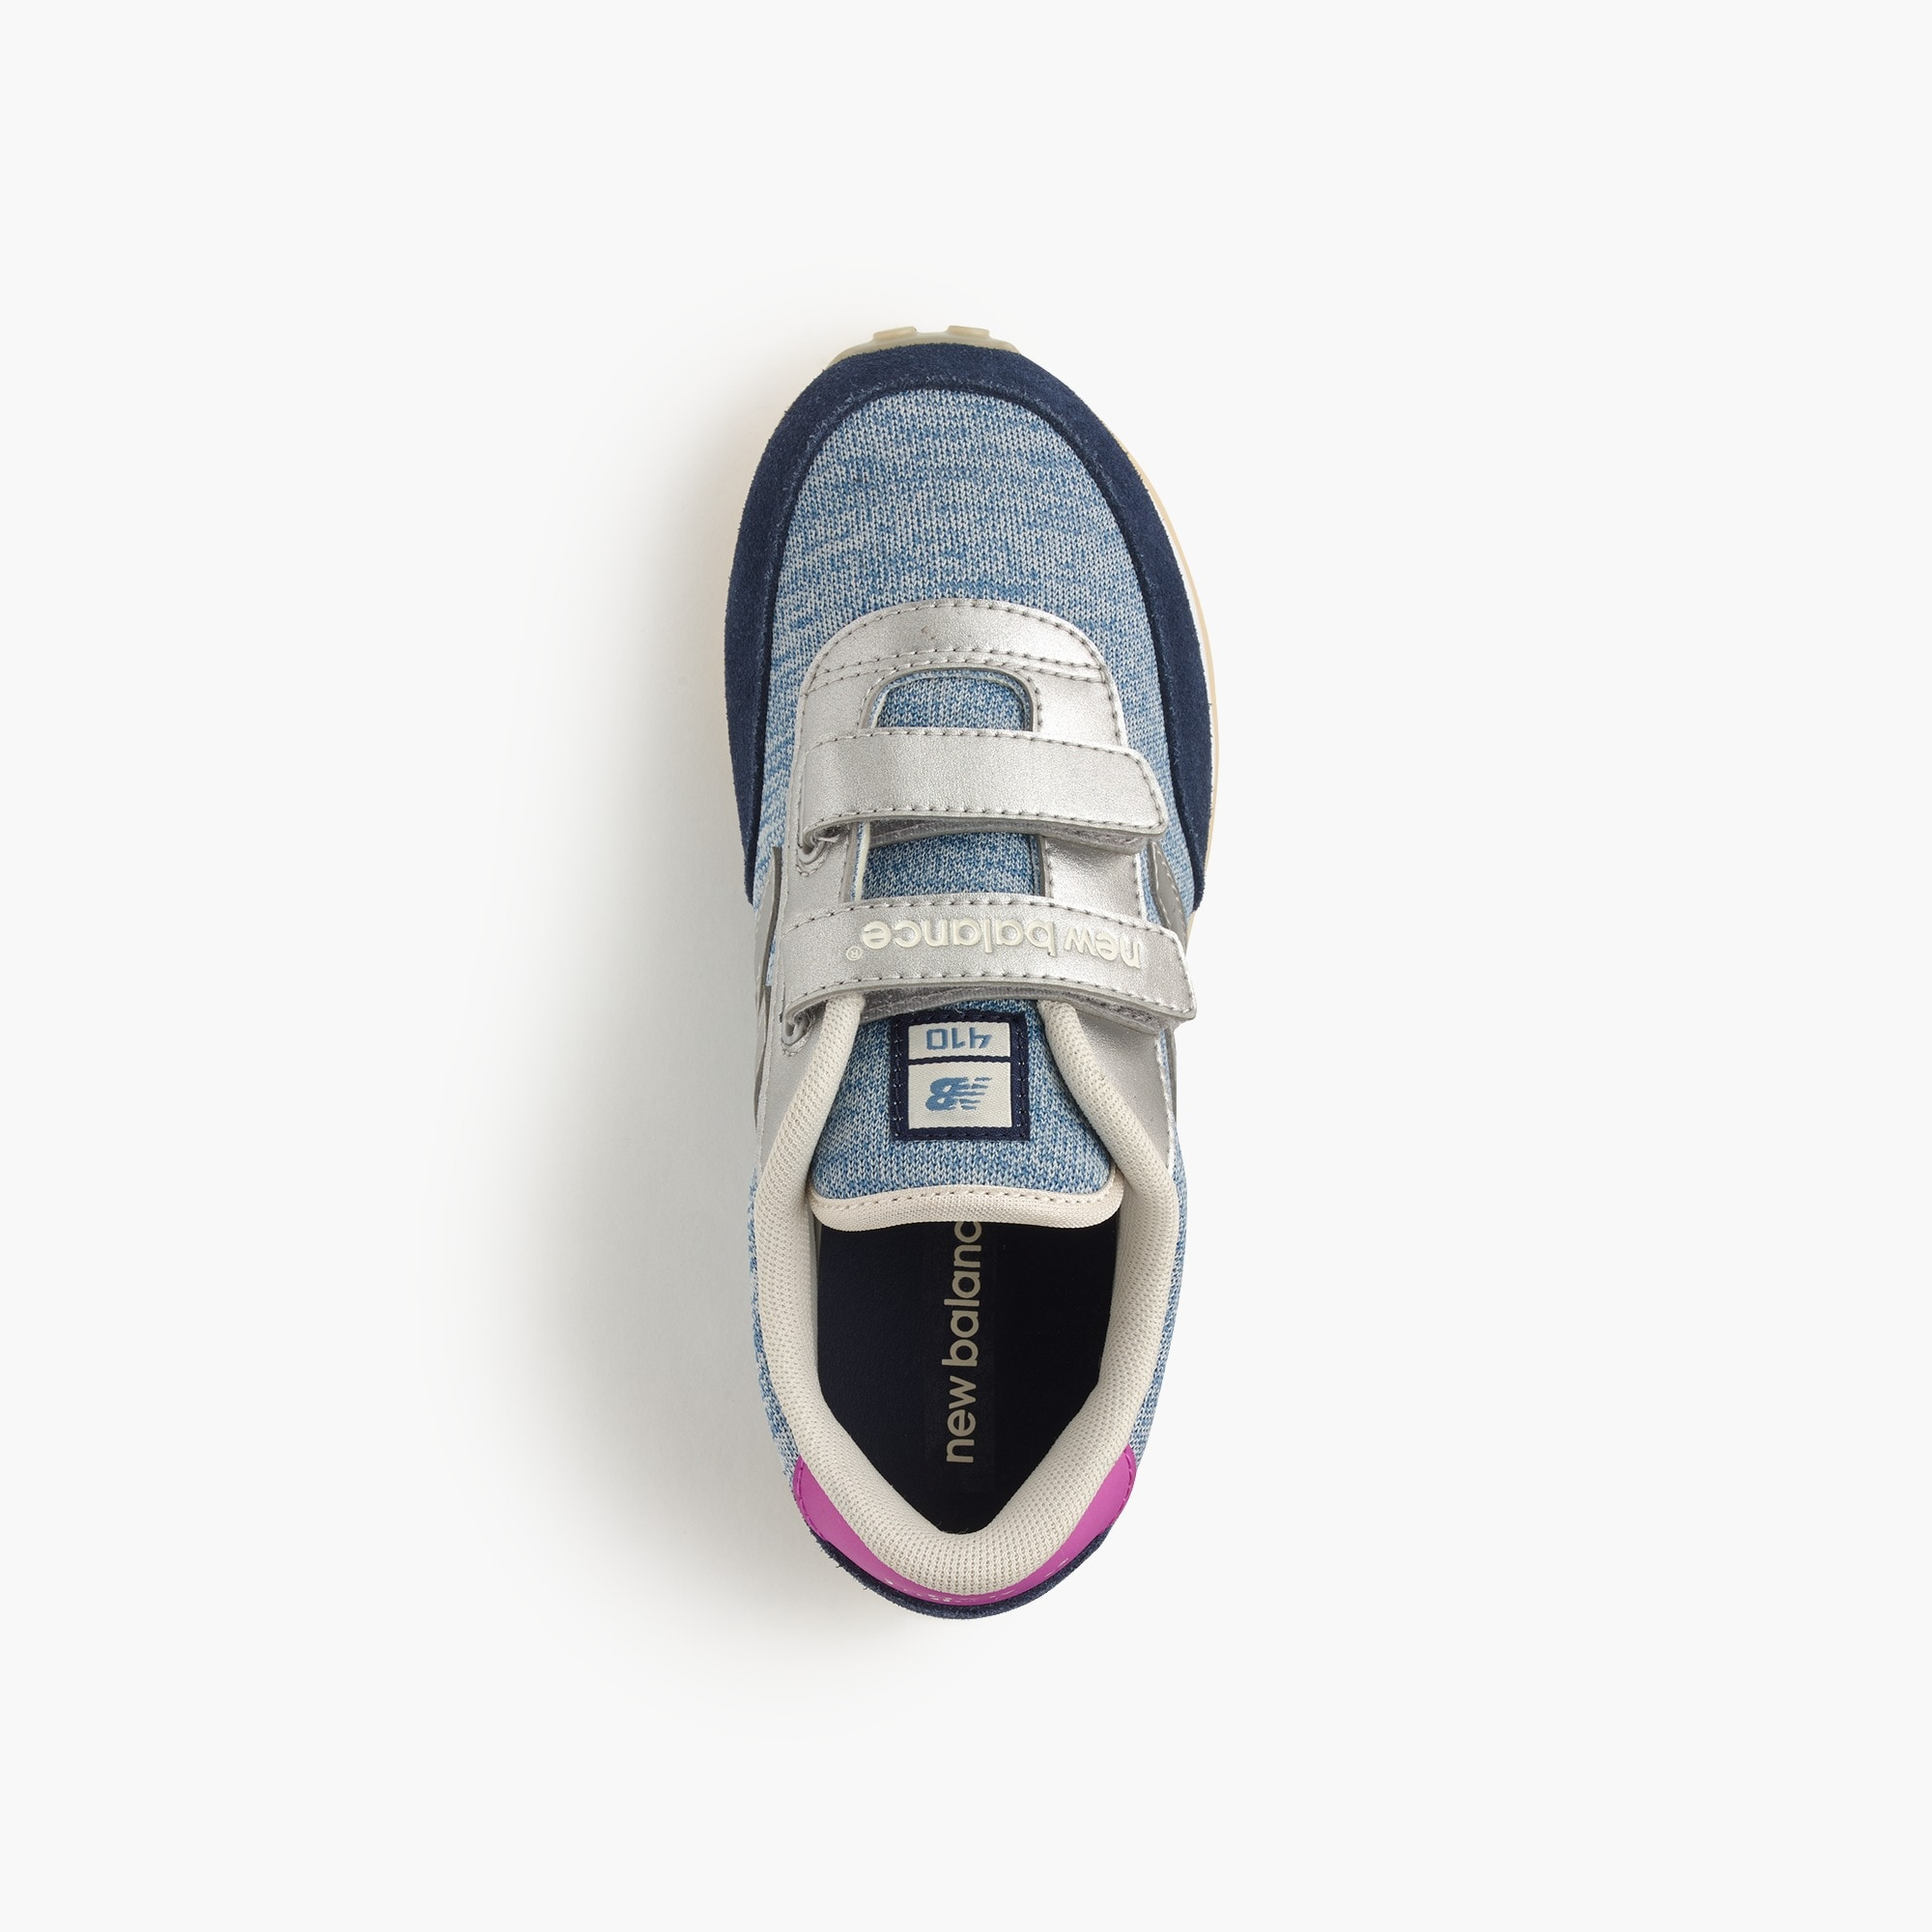 Image 2 for Kids' New Balance® for crewcuts 410 Velcro® sneakers